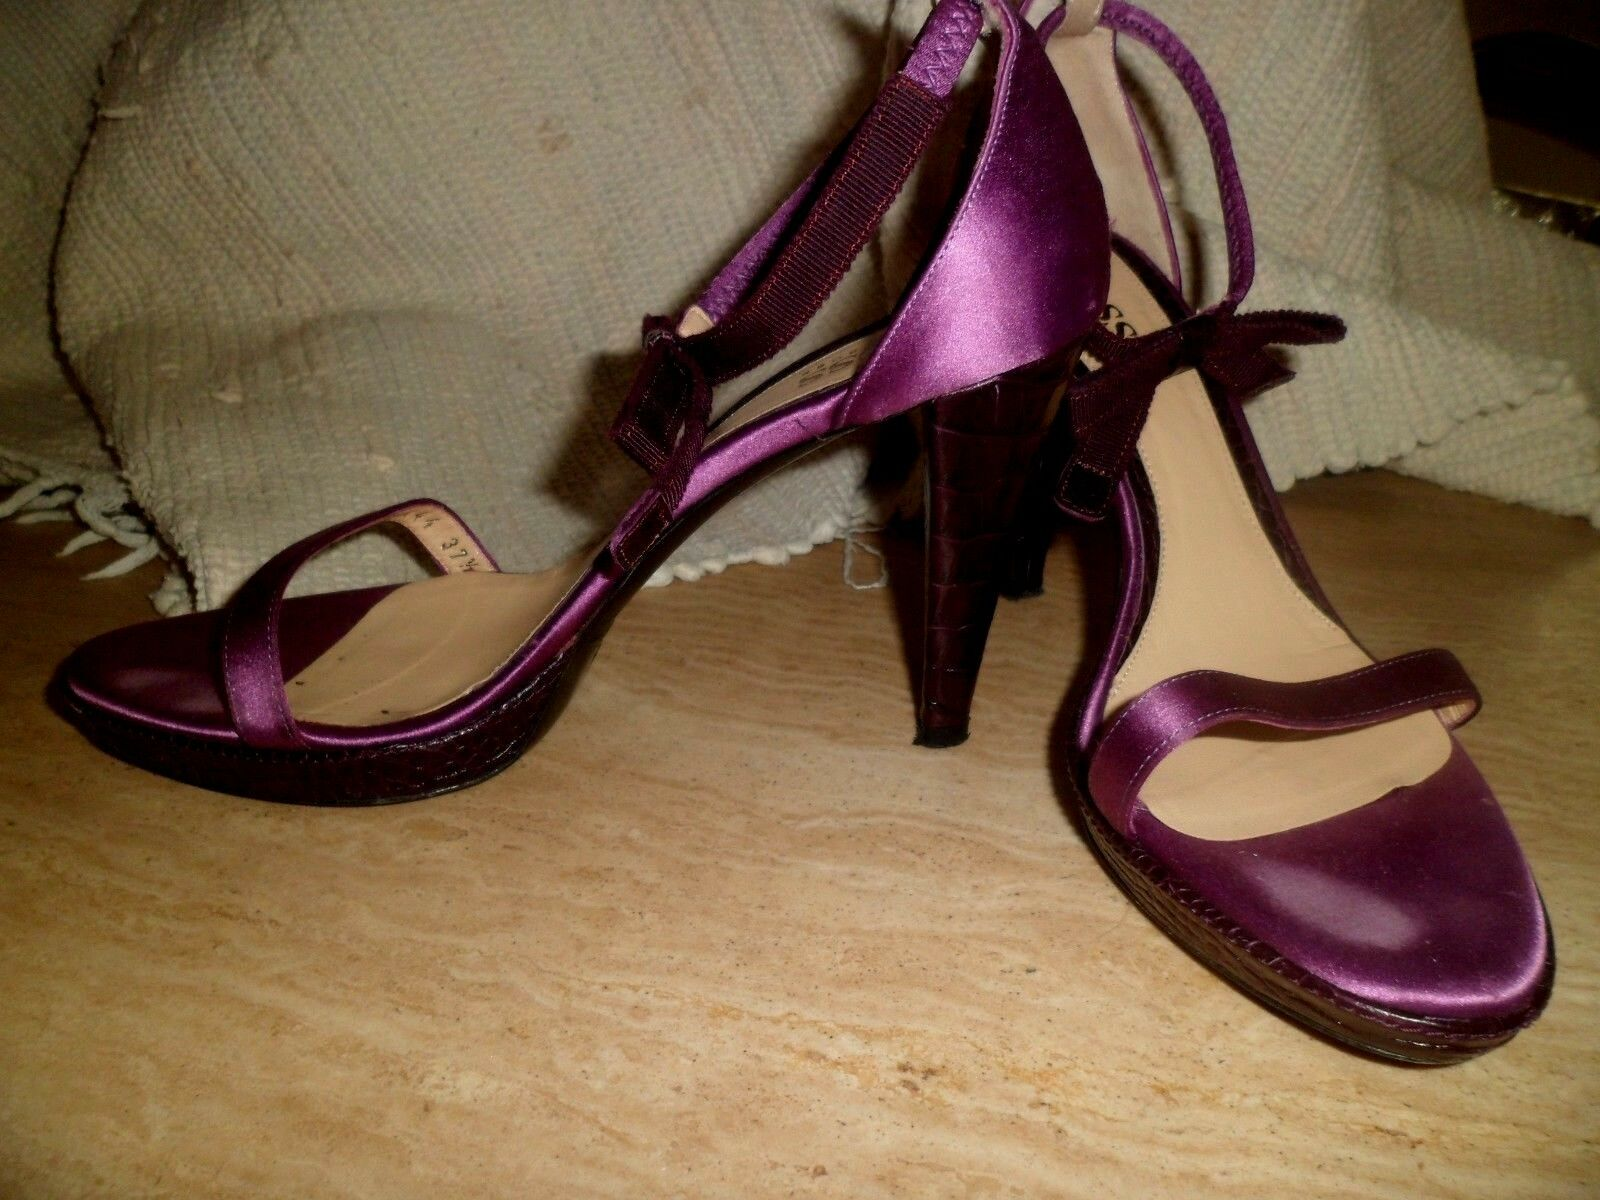 Hugo Boss Peep Toe Ankle Bow Heels Satin & lila Leather in lila & EU 37.5 UK 4.5 b24b60